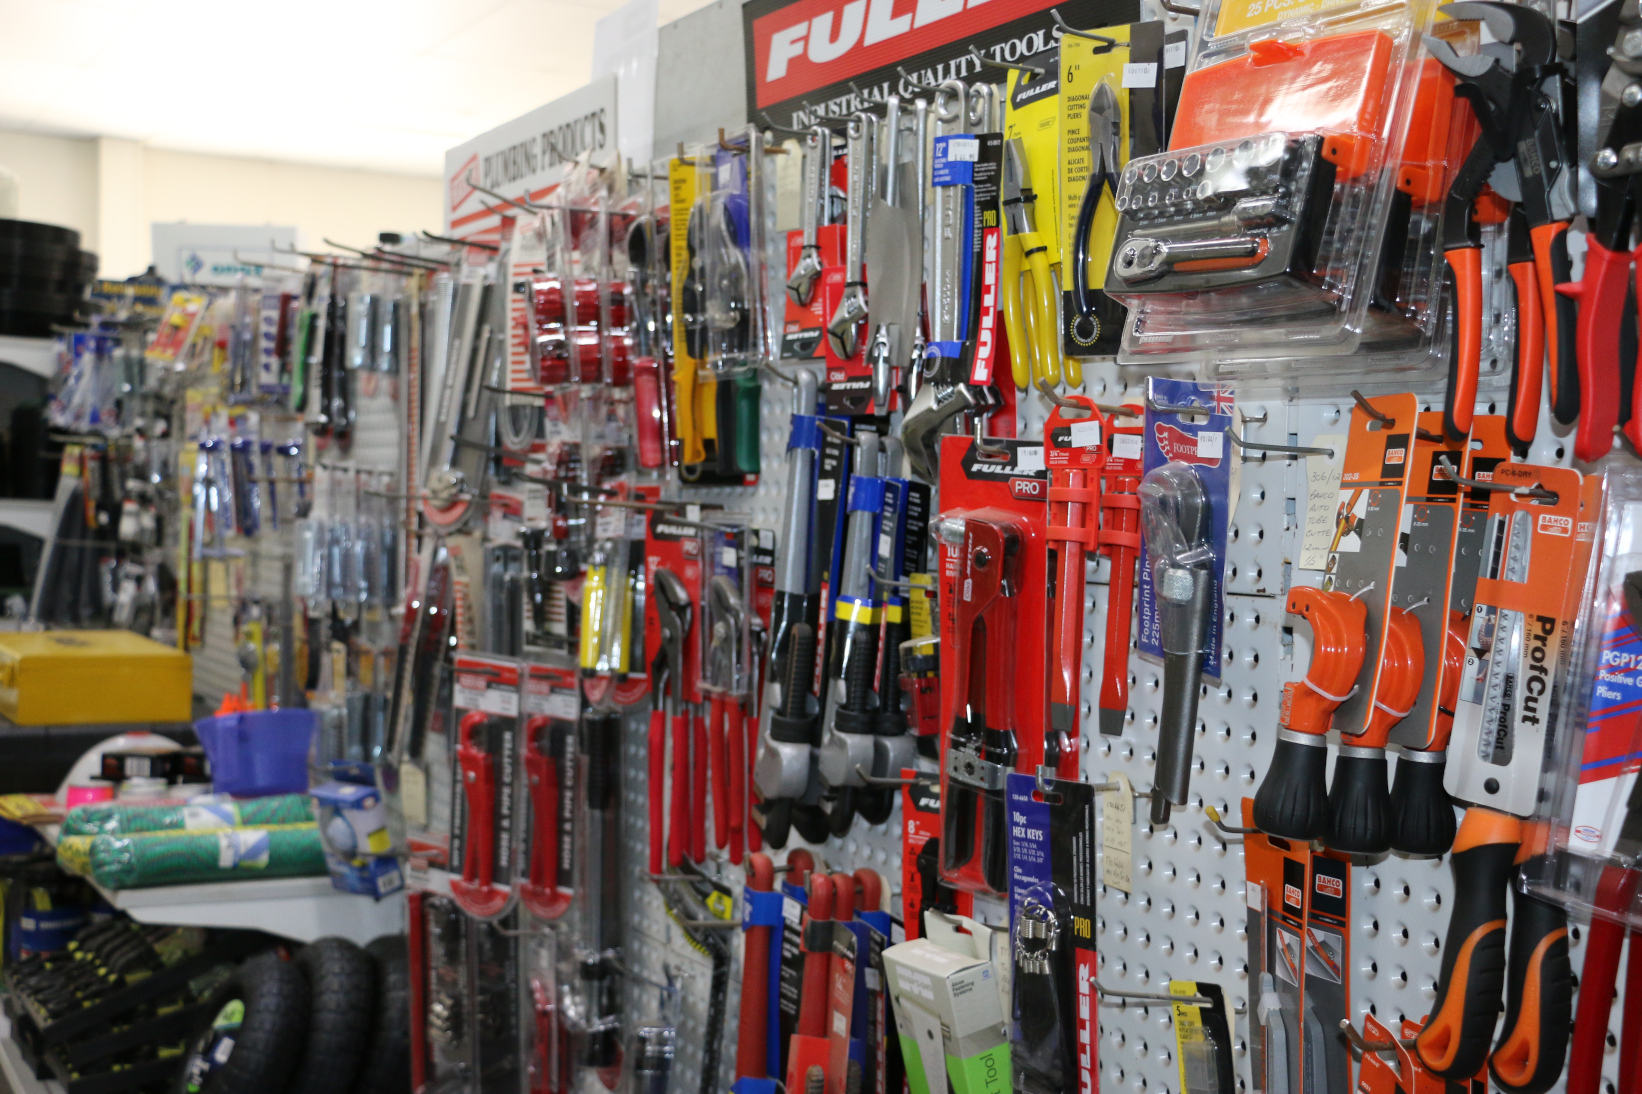 Plumbing tools and accessories